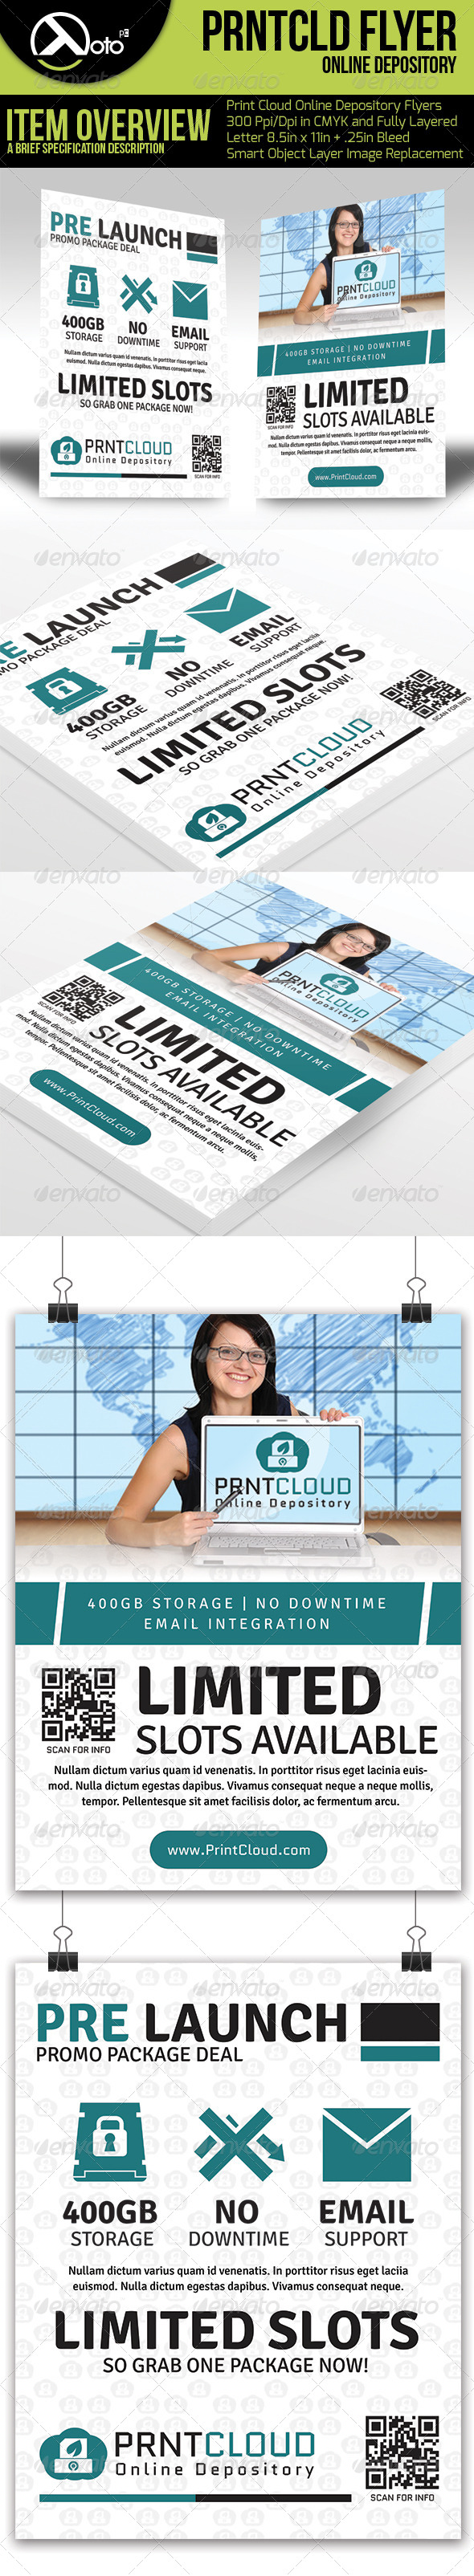 Print Cloud Online Depository Flyers